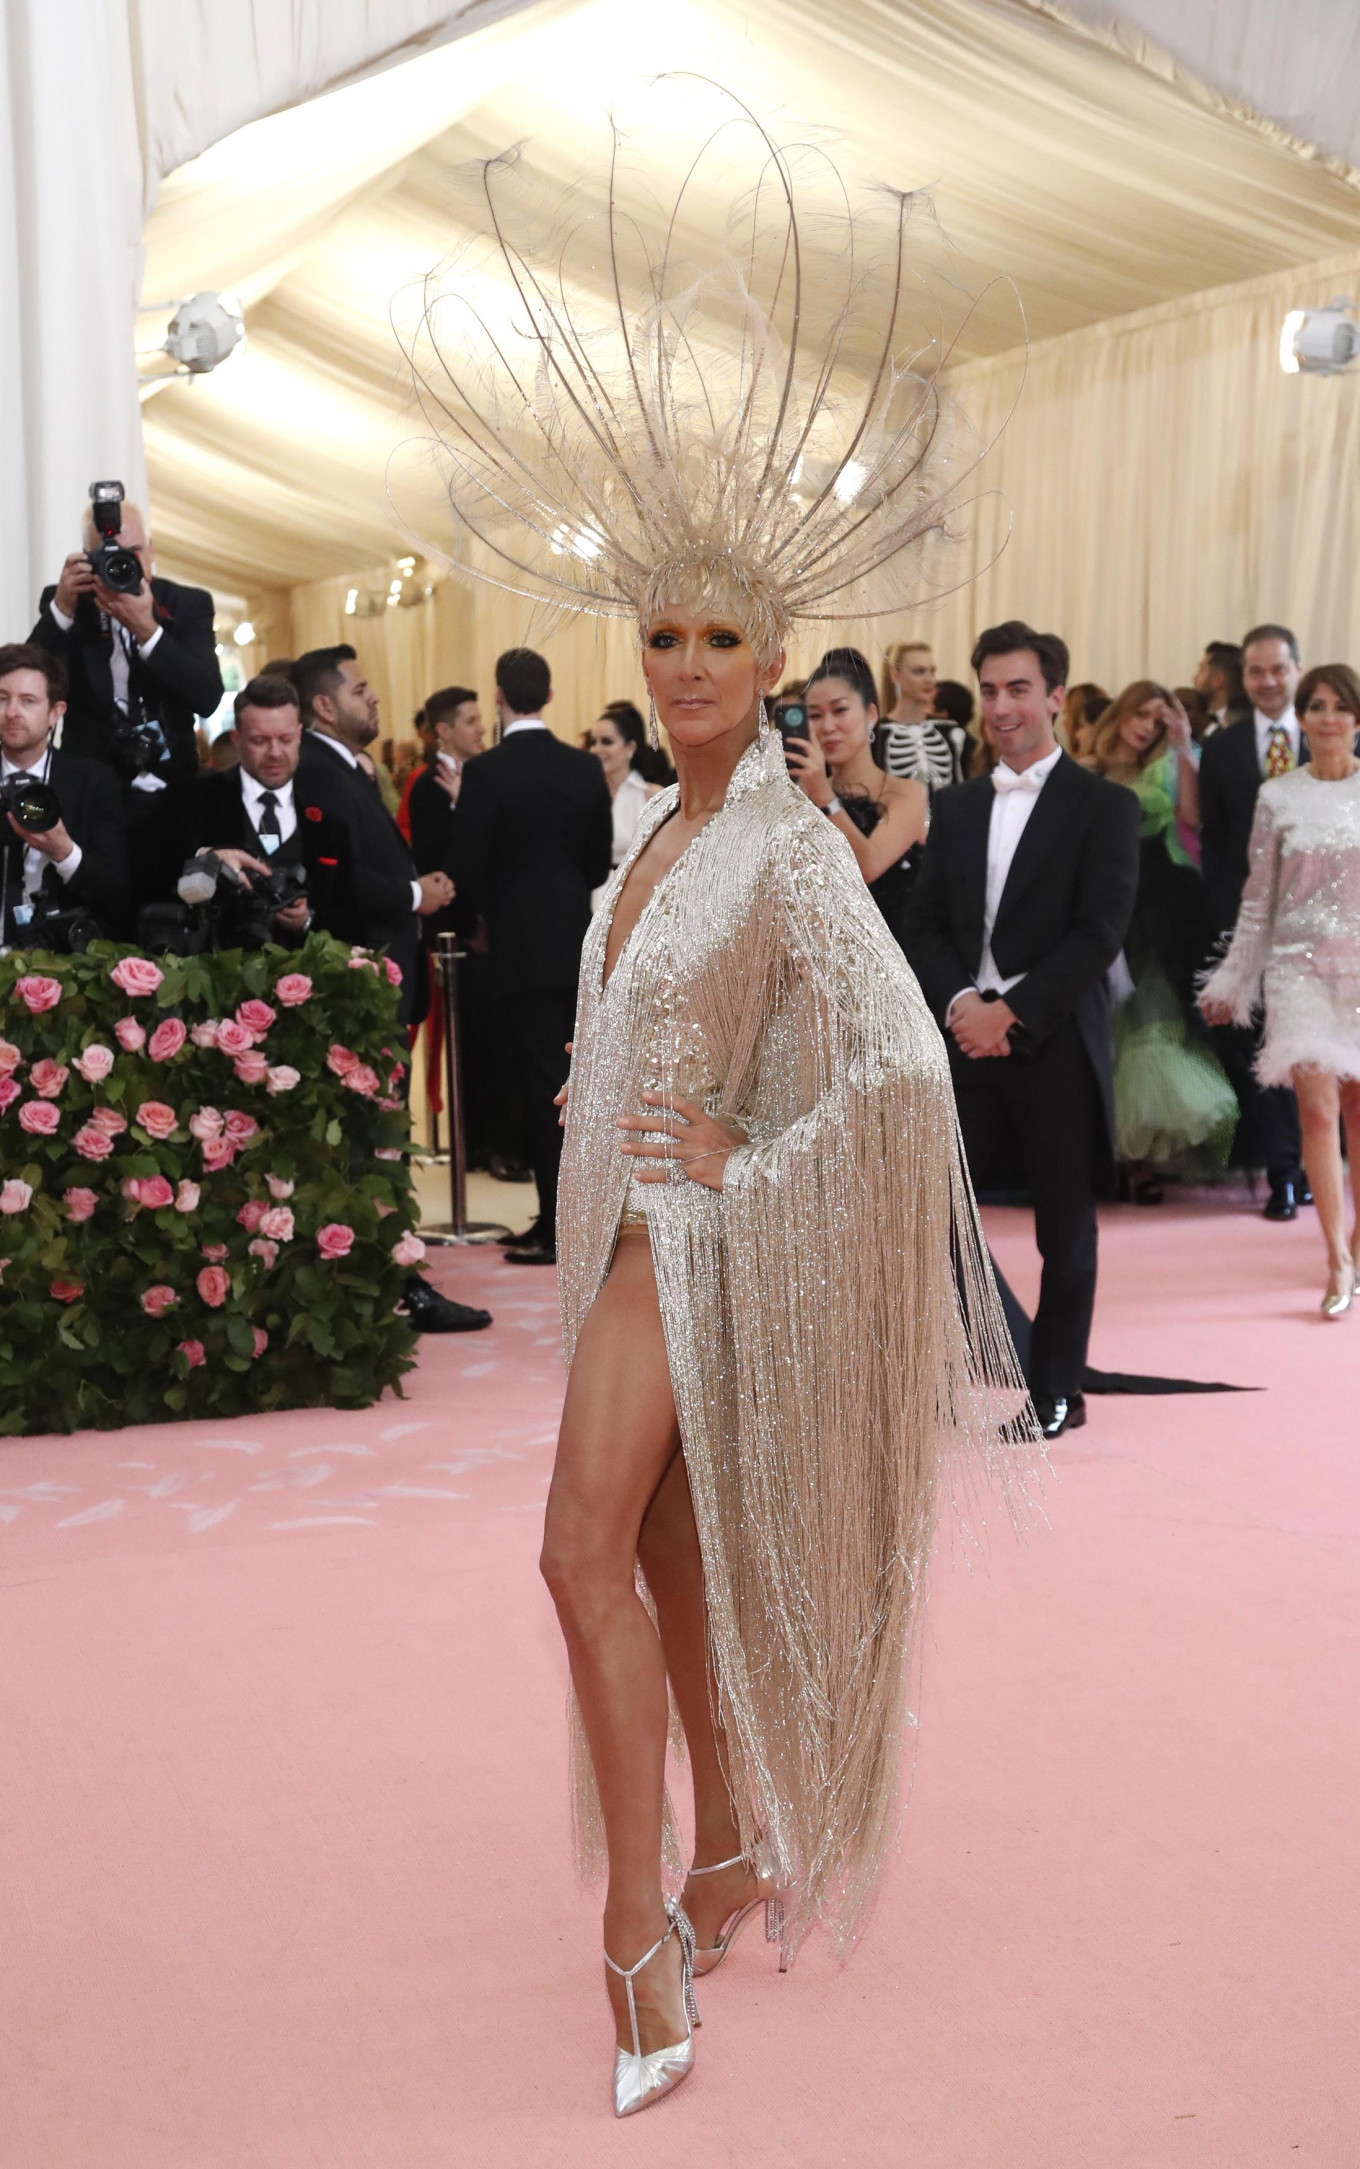 Celine Dion at the Metropolitan Museum of Art Costume Institute Gala in New York City, US, on May 6, 2019.